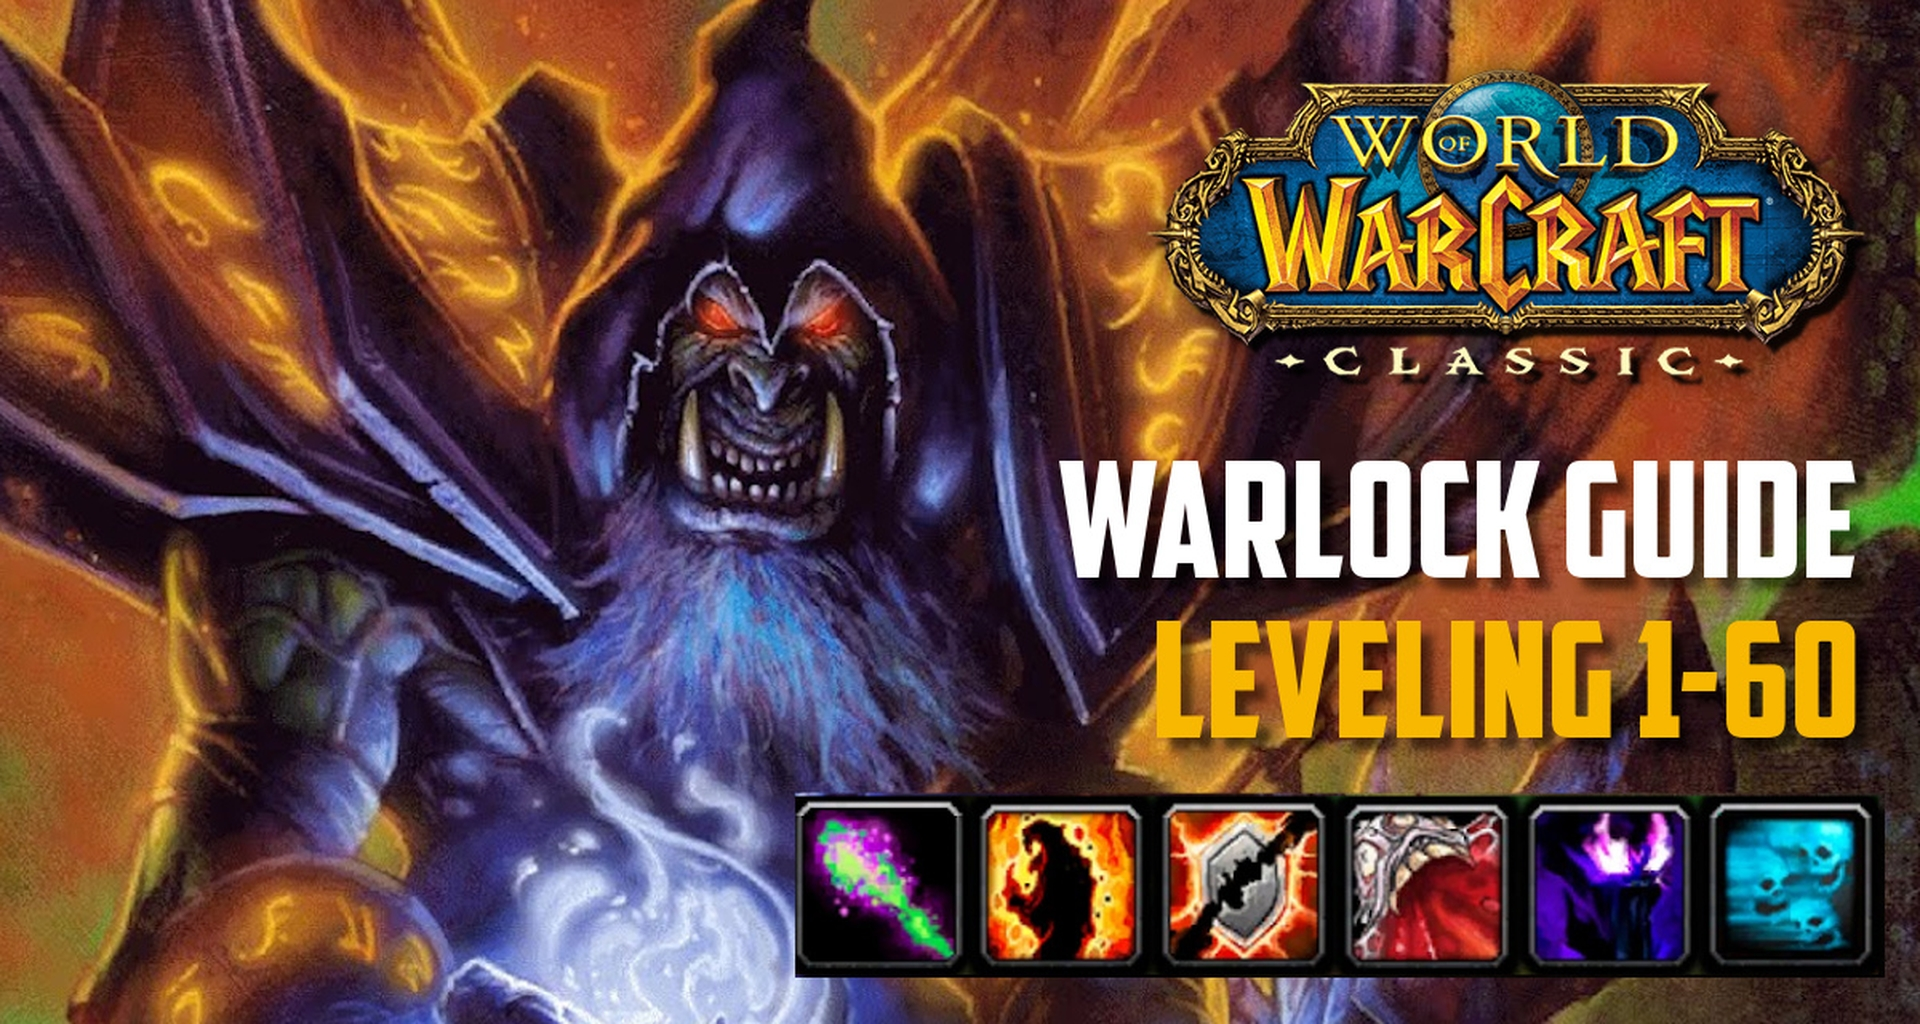 Classic WoW - Warlock Guide Leveling (1-60) - Best Tips